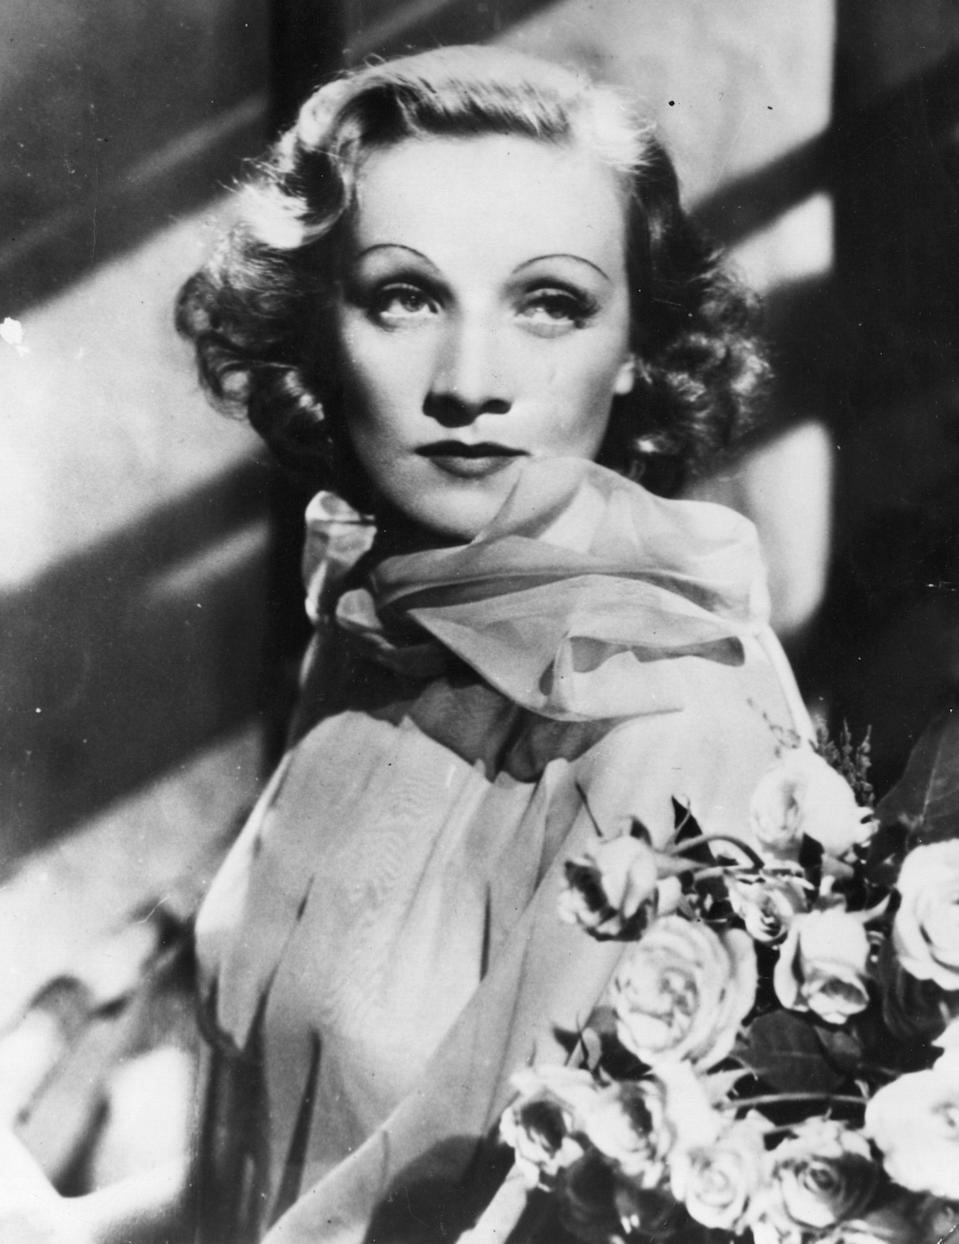 """<p>Marie Magdalene """"Marlene"""" Dietrich was born in 1901 in Berlin, Germany. Her father was a military officer who passed when Dietrich was young, and her and her sister were first tutored at home in ballet, violin, and piano. This musical education inspired the young Dietrich to work towards being a violinist, but a wrist injury in her teenage years kept her from pursuing that path—much to the film industry's benefit. Dietrich began acting in small roles, and eventually landed a part in <em>The Blue </em><em>Angel</em>, which capitulated her to Hollywood. Among her most notable films, especially during the 1930's and 40's, were <em>Shanghai Express</em>, <em>I Love a Soldier</em>, and <em>Manpower</em><em>. </em></p><p>Dietrich, at the onset of World War II, spoke out against the Nazis of her home country and eventually became an American citizen in 1939. Her performances for Allied troops and aid in selling war bonds led to Germany denouncing her, but it is estimated that she helped raise over a million dollars for the war effort. </p><p>The femme fatale, who focused on singing later in her career and was revered for her voice's deep register, was also known for her captivating and alluring personality that led to her many love affairs—with both men and women. Greta Garbo, Frank Sinatra, Mercedes de Acosta, Gary Cooper, and Jimmy Stewart (to name a few) were all counted among her partners. She married Rudolf Sieber (who she met on the set of <em>A Love Tragedy</em>) in 1923, but they were separated for most of their marriage, despite not divorcing until 1976. Many of her writings and journals, recently released by her daughter Maria Riva 25 years following her death, detail her many romantic encounters. Billy Wilder once said that Dietrich was an """"incurably romantic soul"""" and her close friend and confidante Ernest Hemingway famously said, """"If she had nothing more than her voice, she could break your heart with it."""" Dietrich also paved the way for androgynous style—o"""